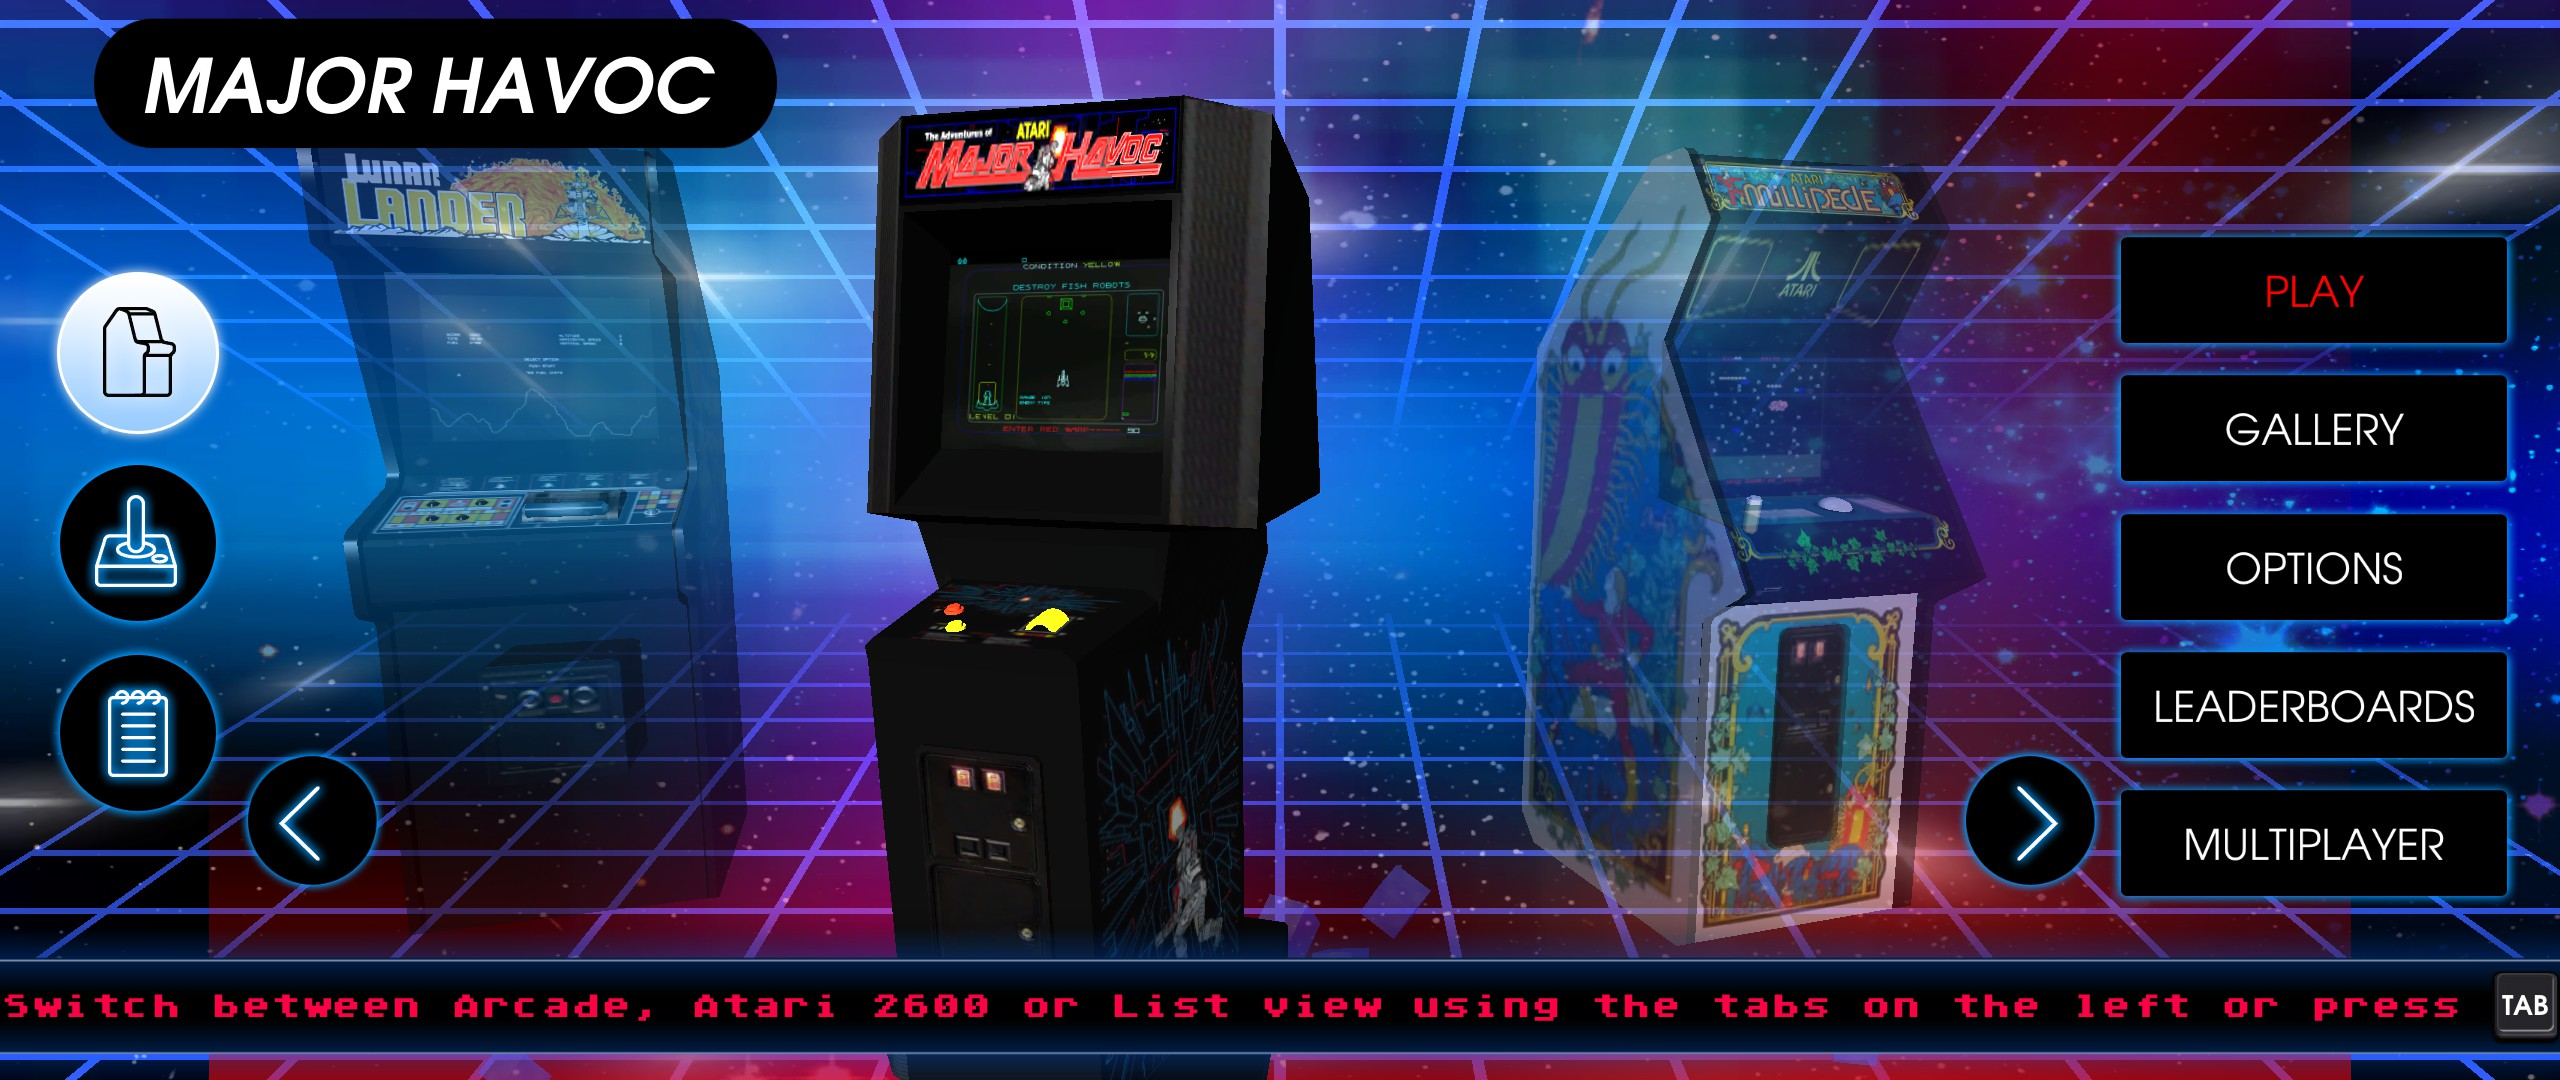 Atari Vault: The Official List of 100 Games